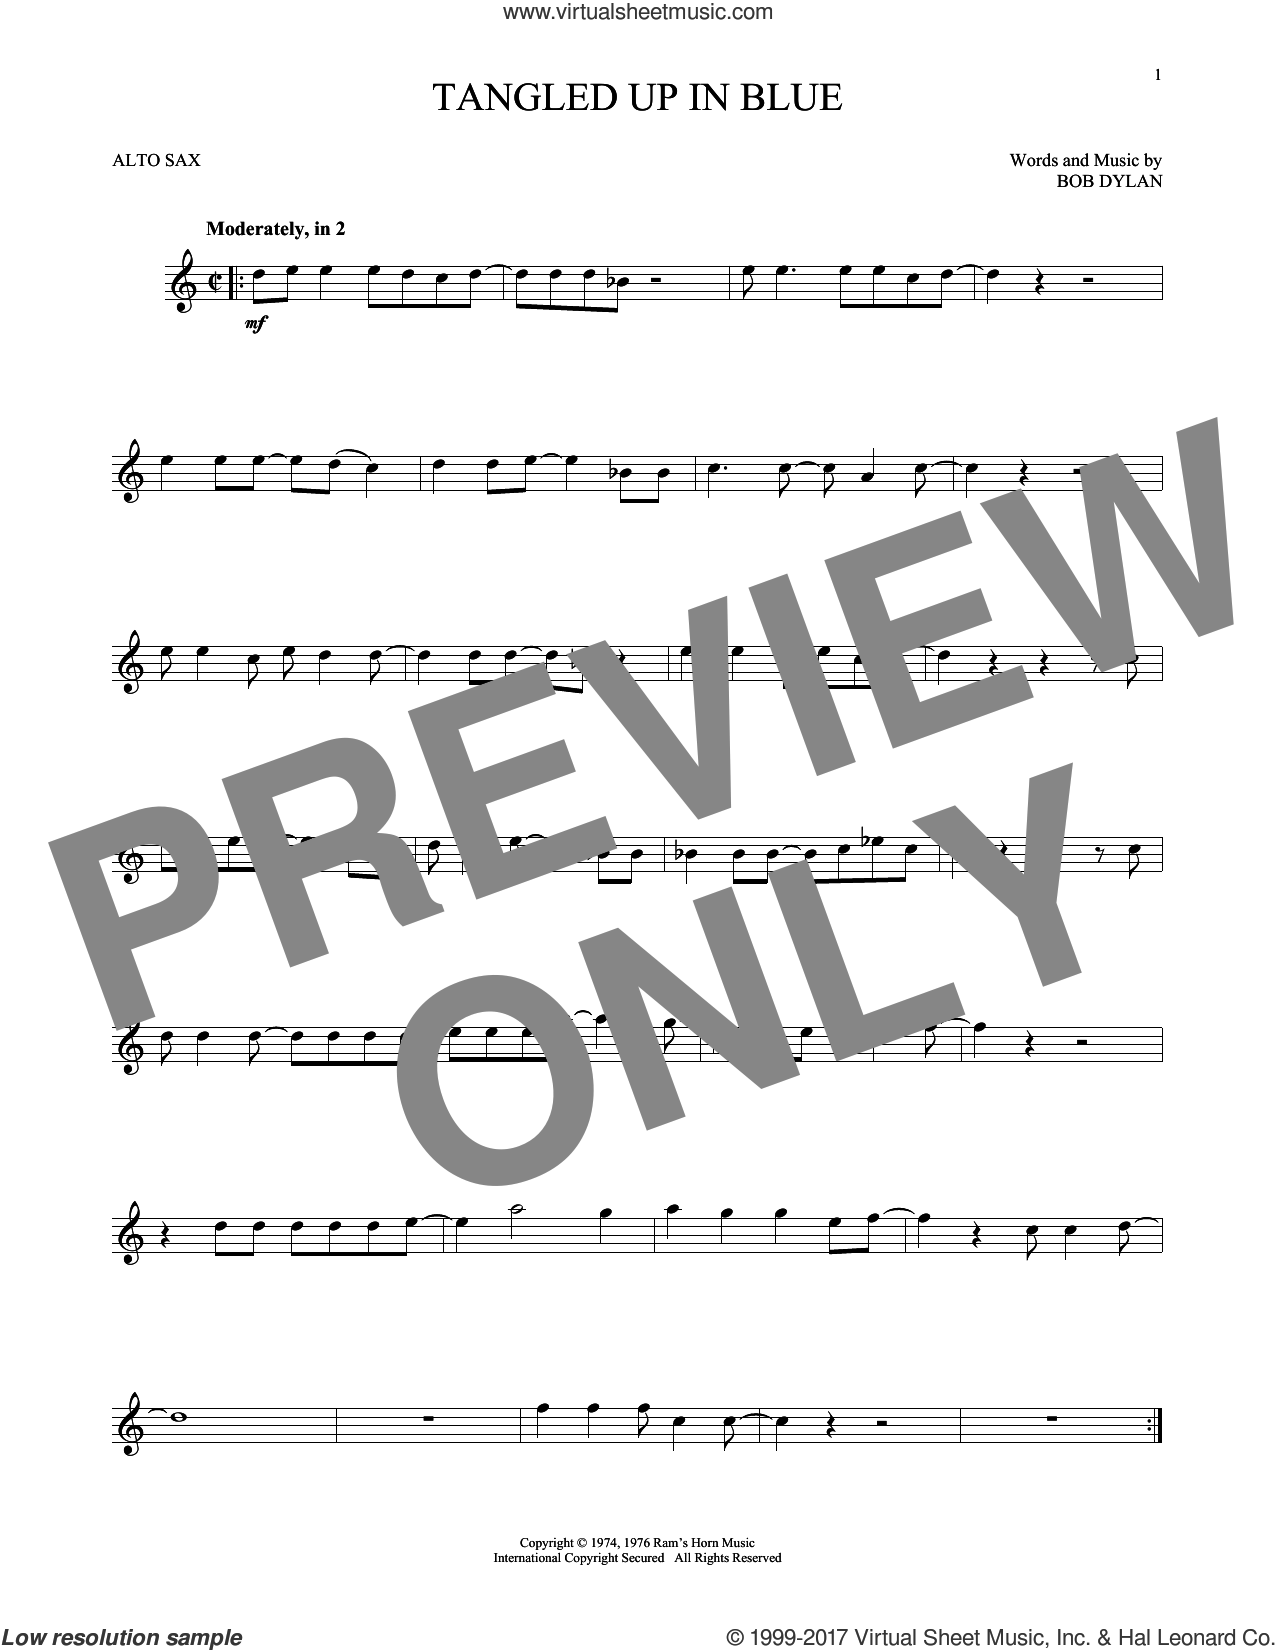 Tangled Up In Blue sheet music for alto saxophone solo by Bob Dylan, intermediate skill level